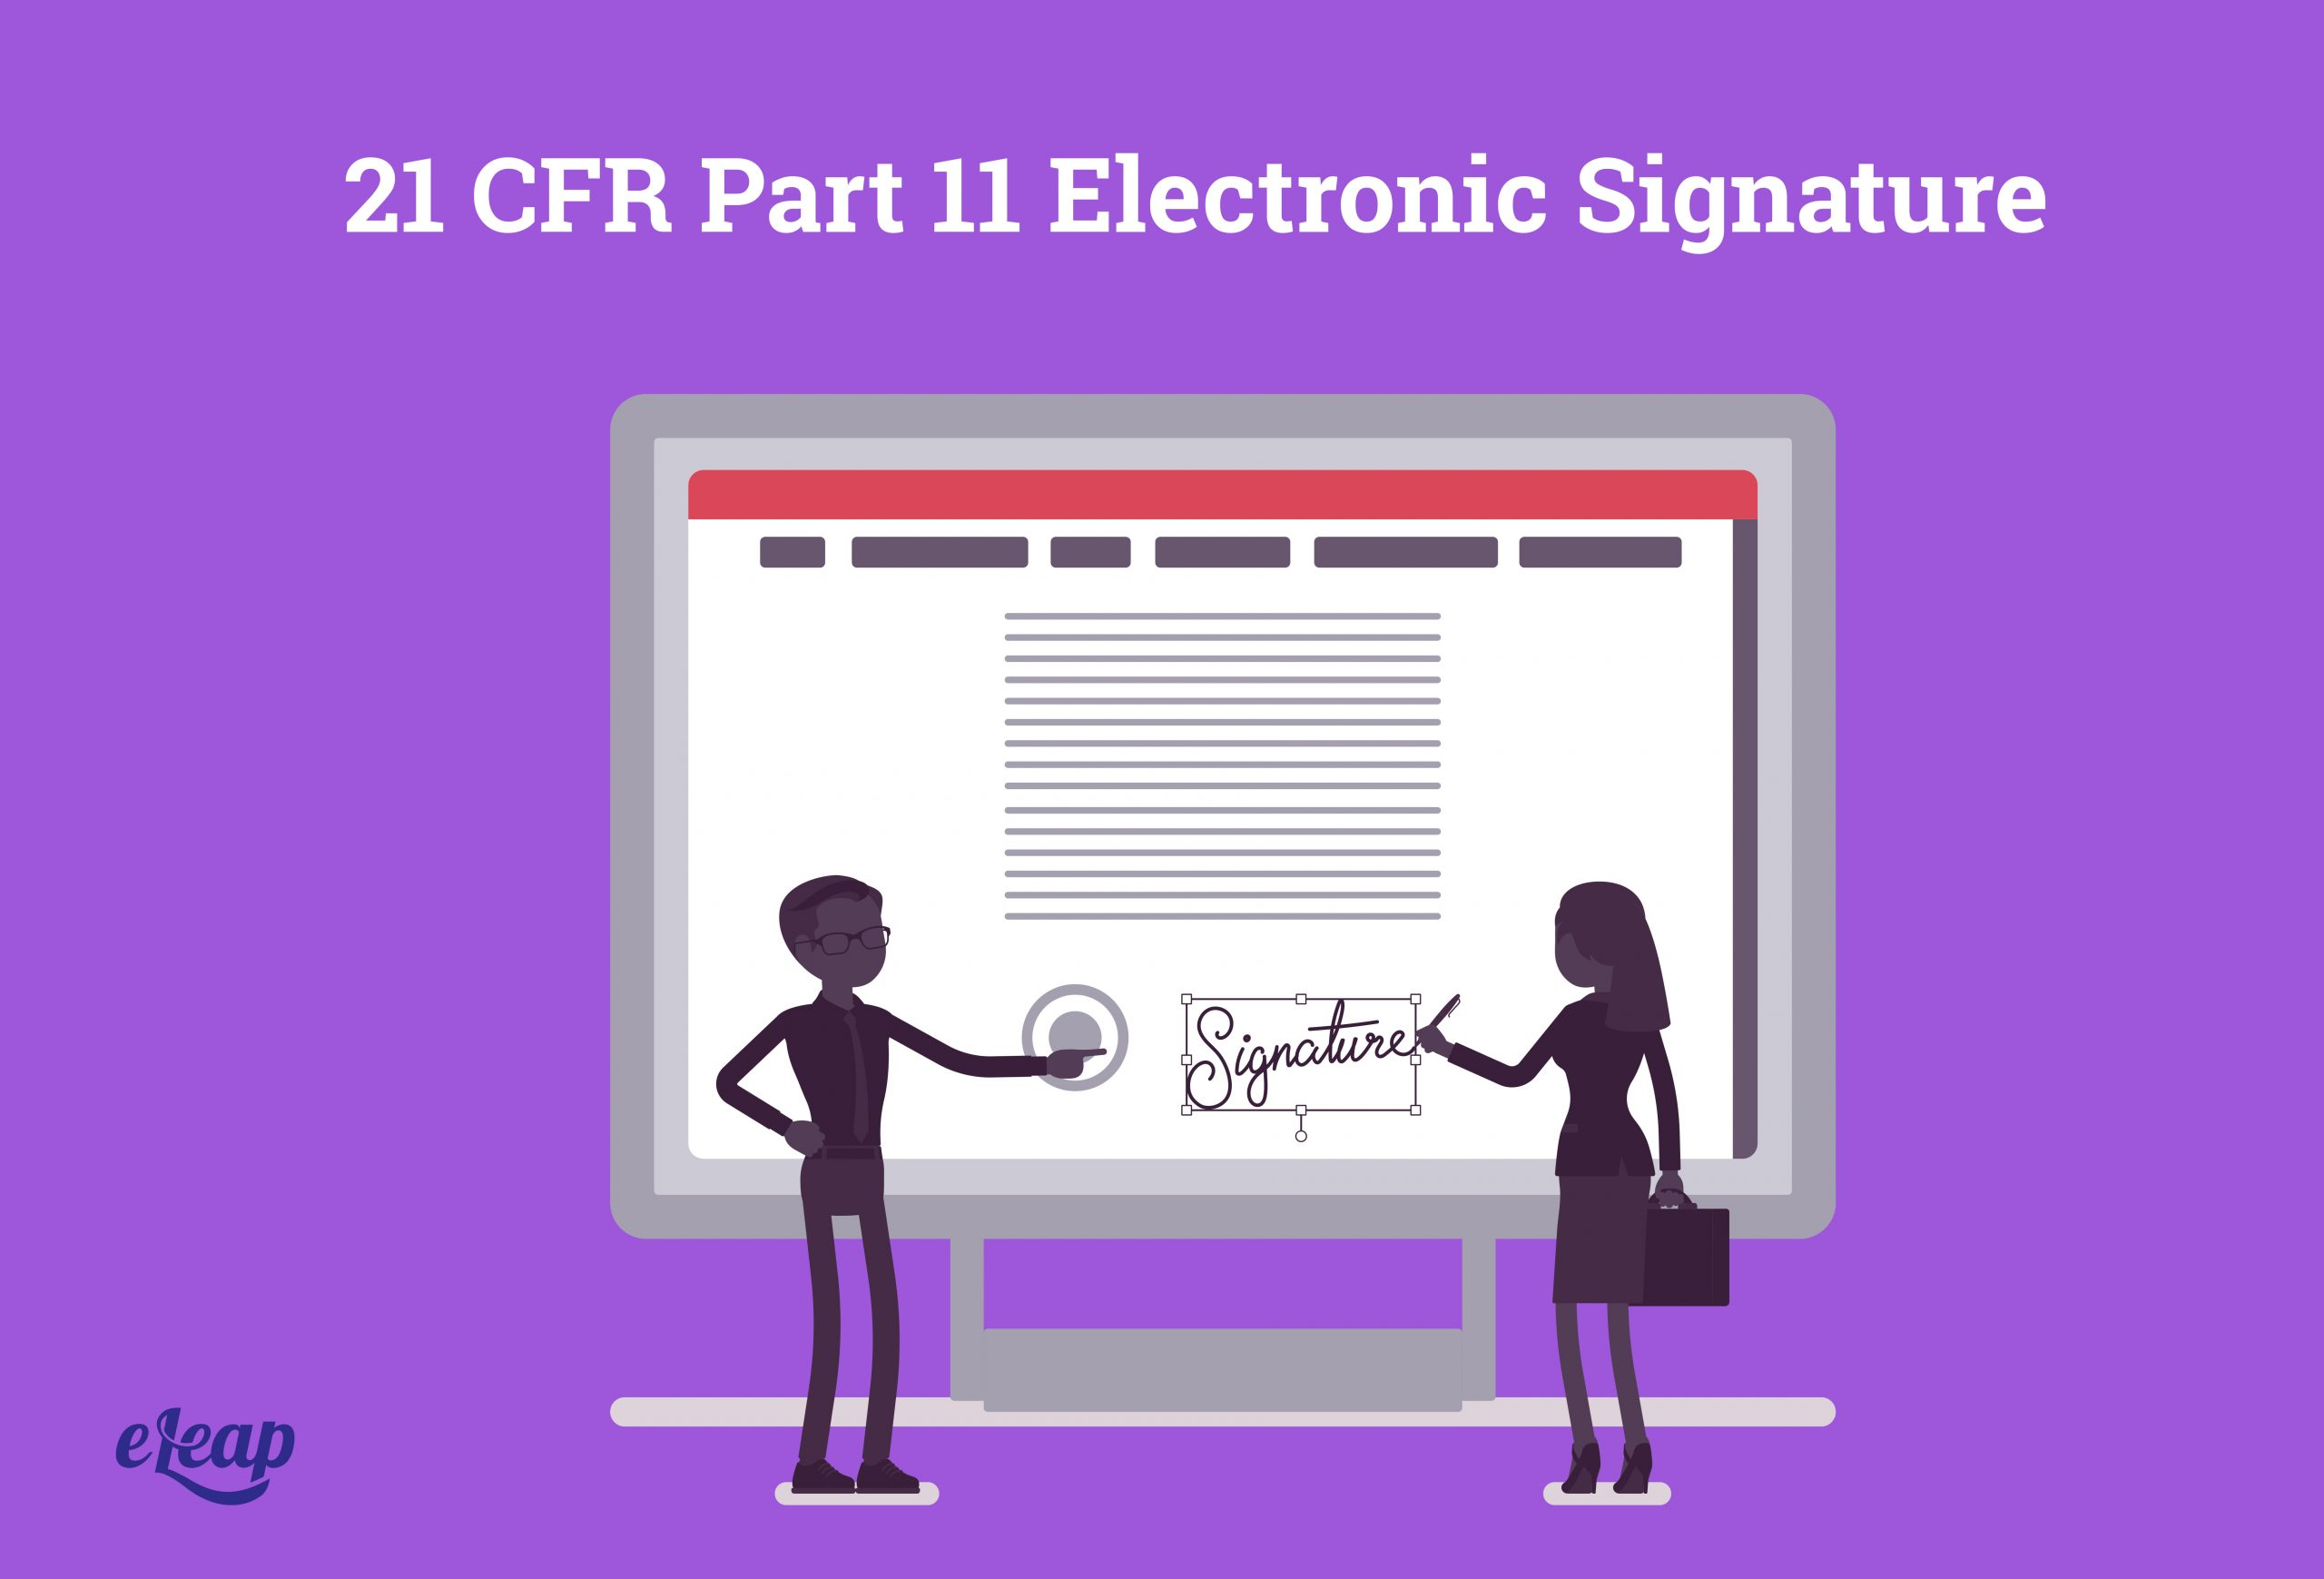 21 CFR Part 11 Electronic Signature